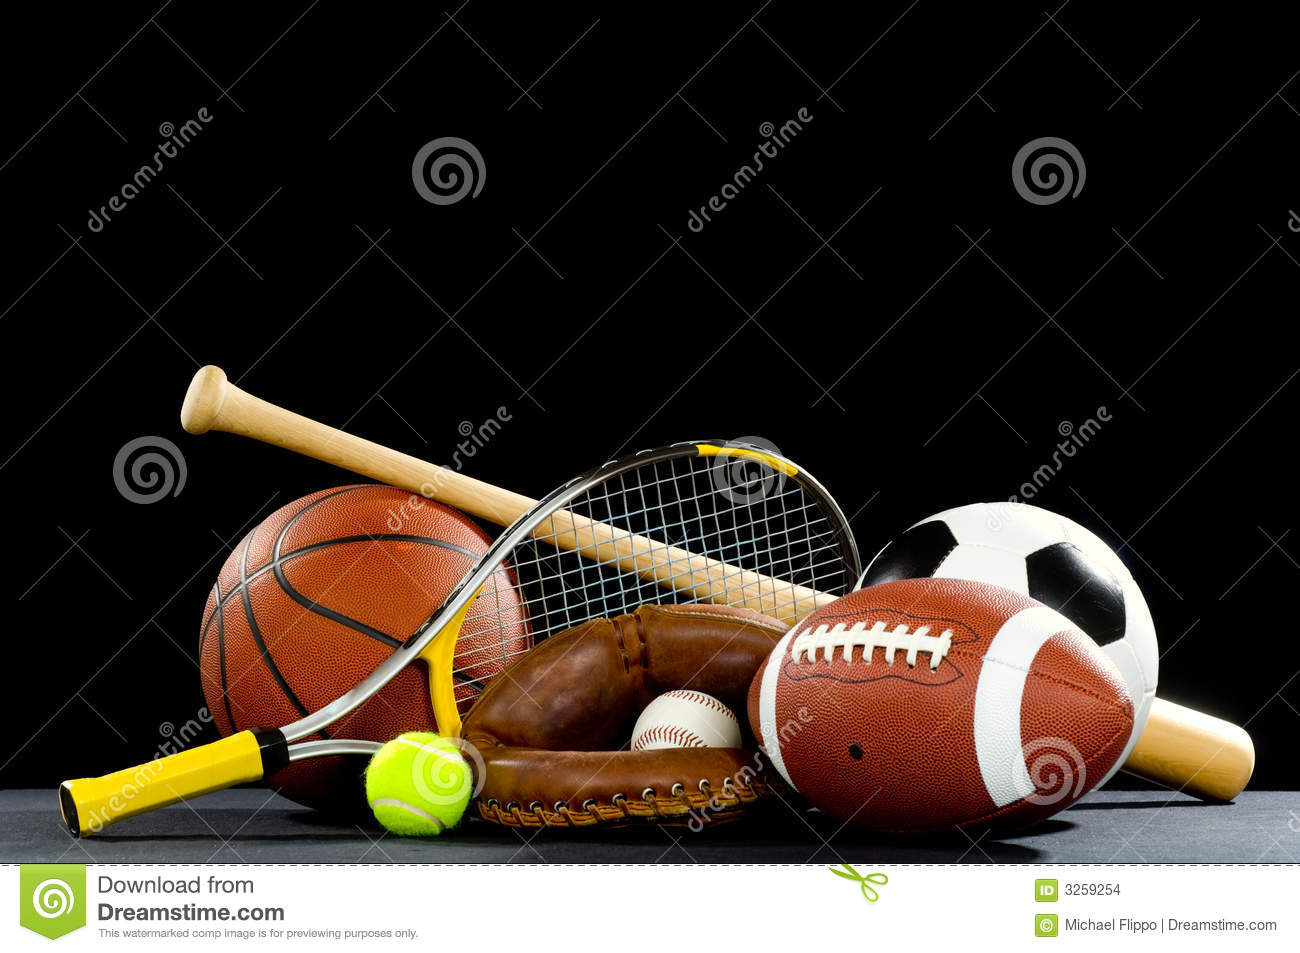 equipment sports football soccer baseball ball american dreamstime variety background tennis basketball bat lace including